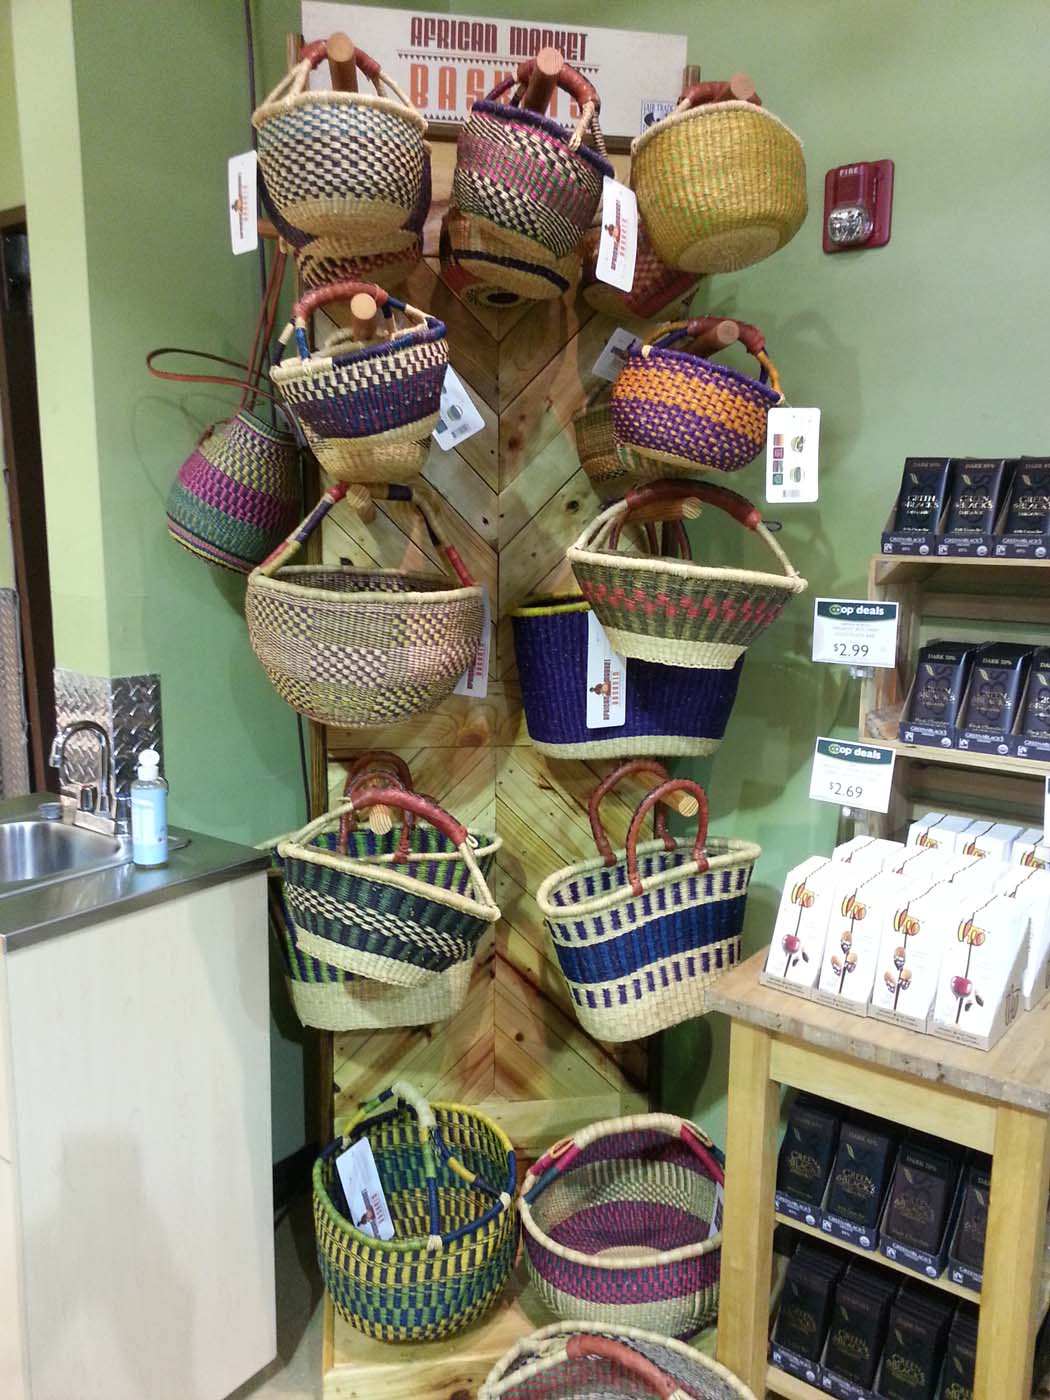 Bolga baskets grab your attention even when tucked into corners